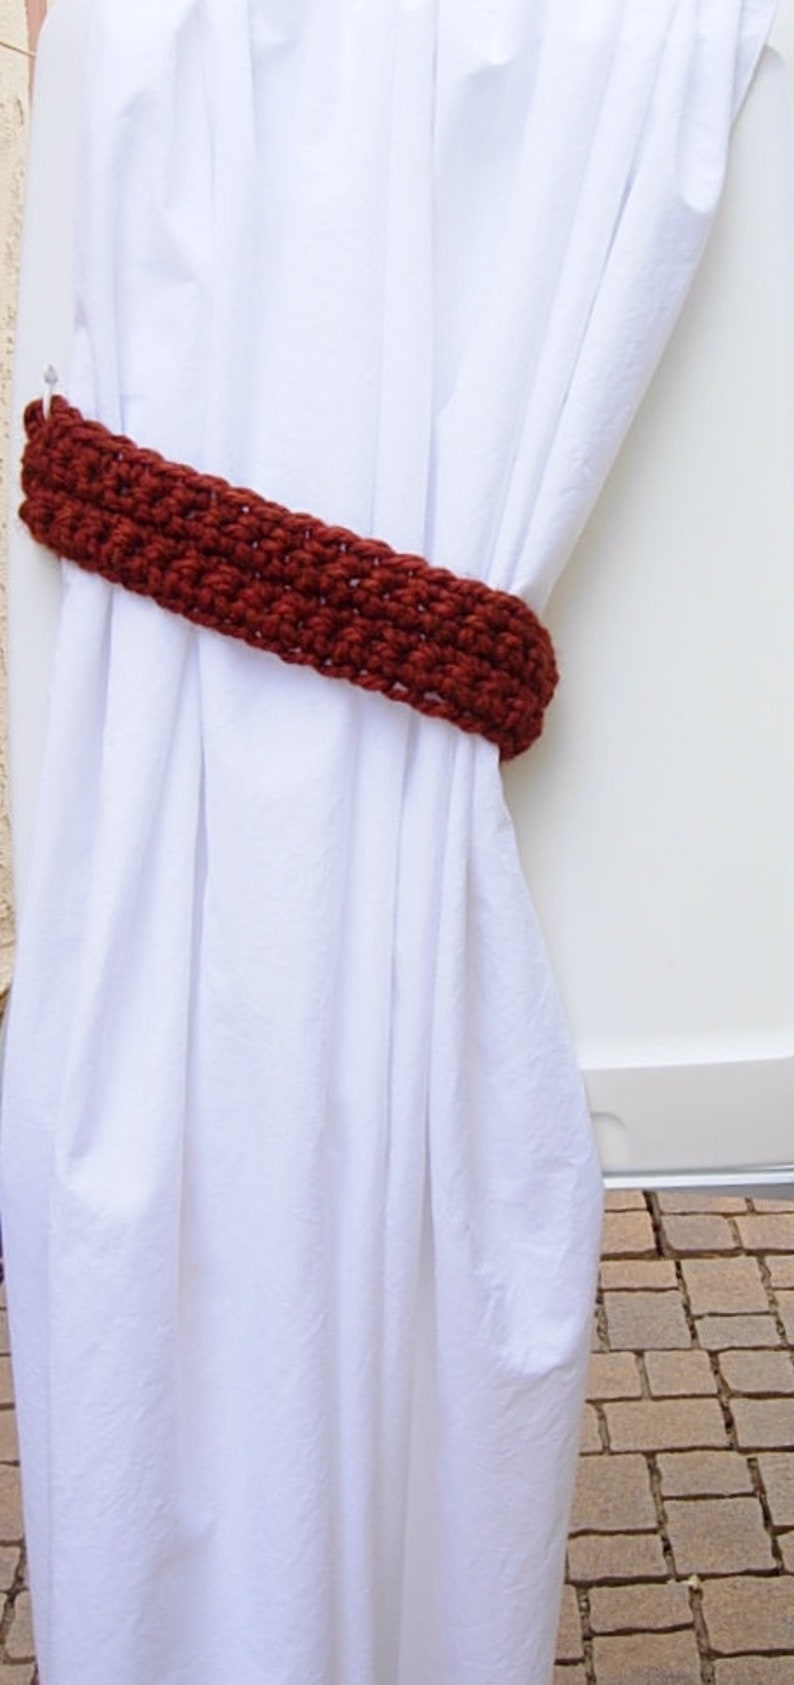 Ready to Ship in 2 Days Basic Thick Crochet Knit Simple One Pair of Dark Burnt Orange Curtain Tie Backs Rust Drapery Tiebacks for Drapes